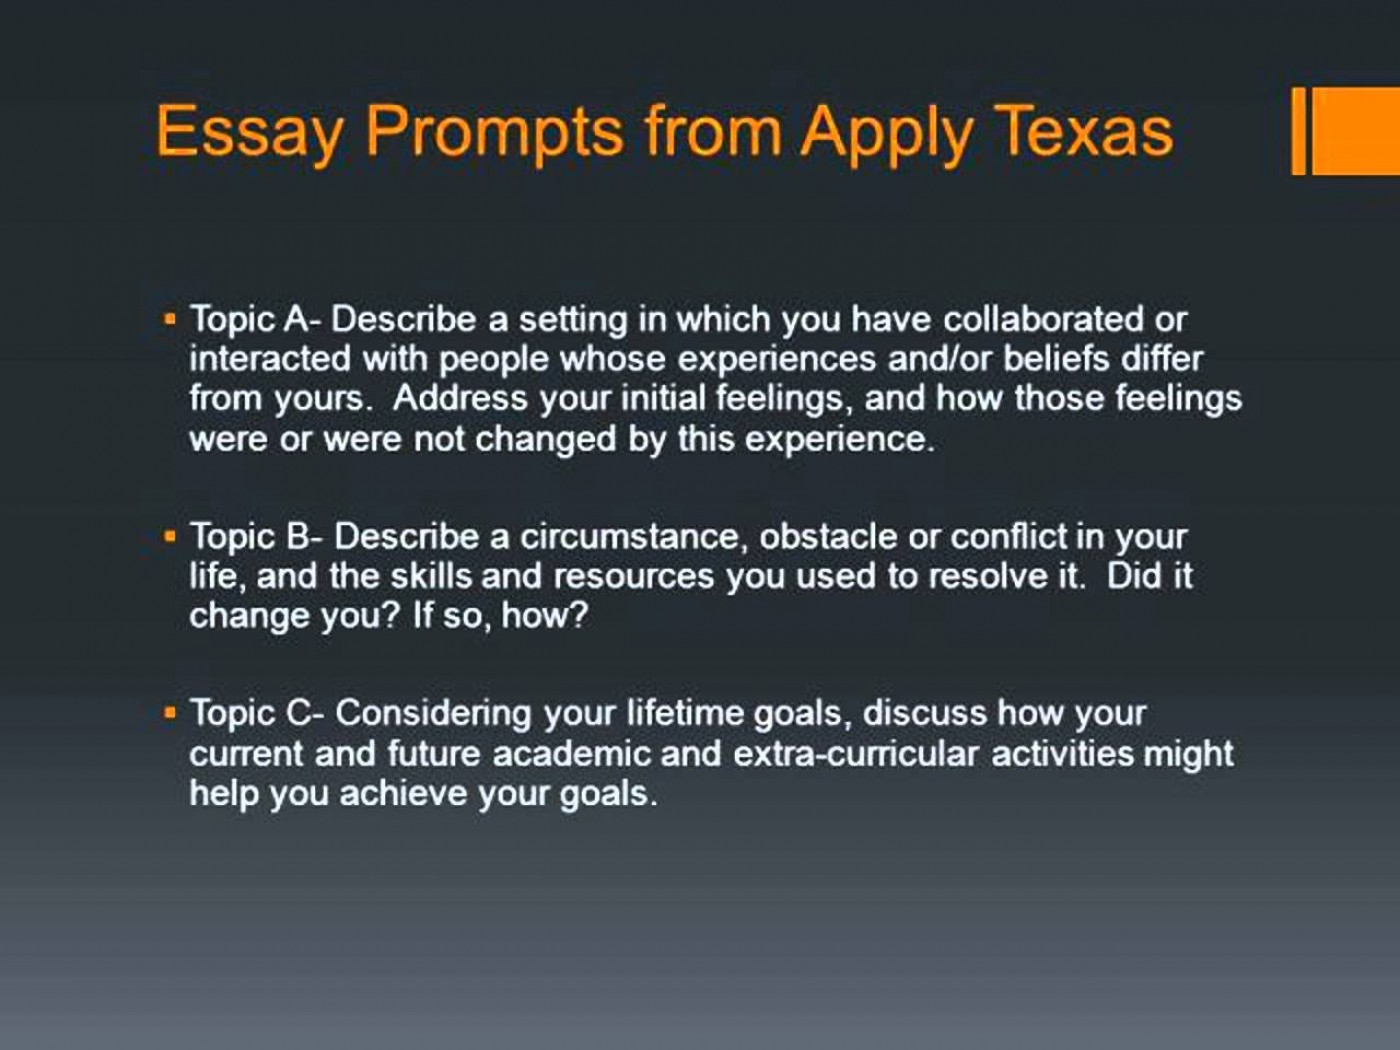 002 Apply Texas Essay Prompts Youtube Topic Examples Maxresde Example Wonderful Applytexas 2018 Prompt C 1400